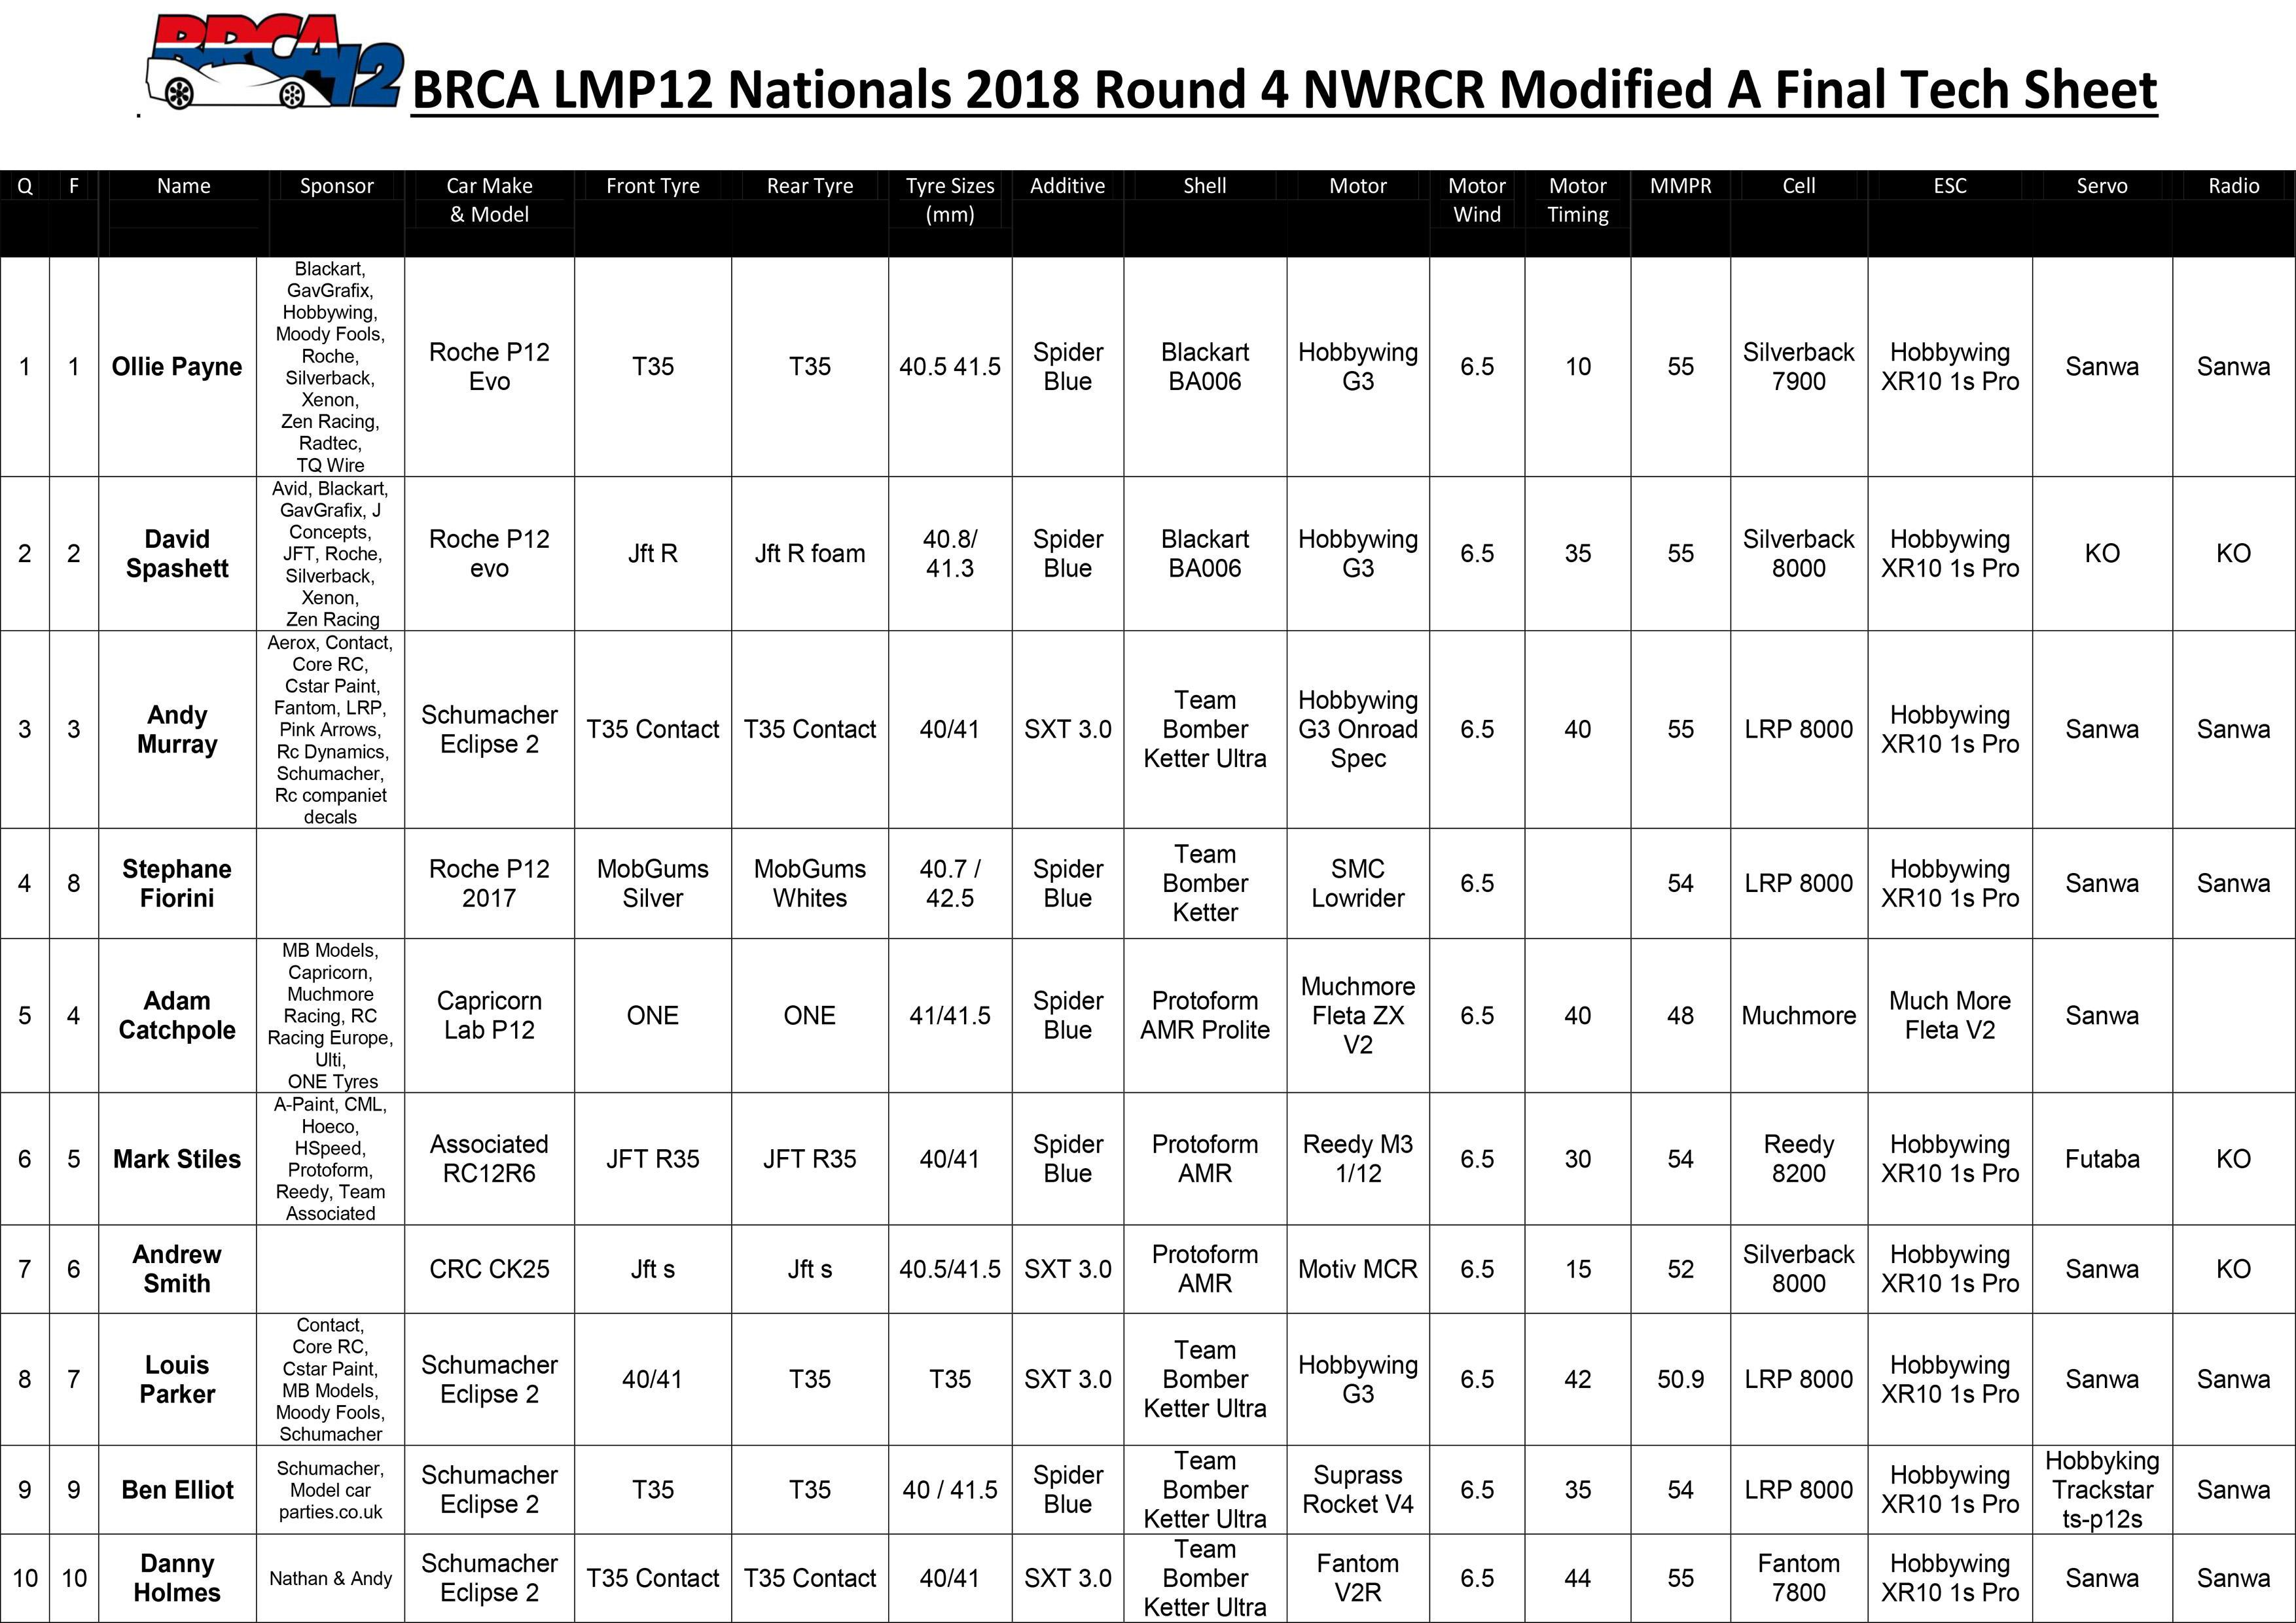 NWRCR Modified Tech Sheet